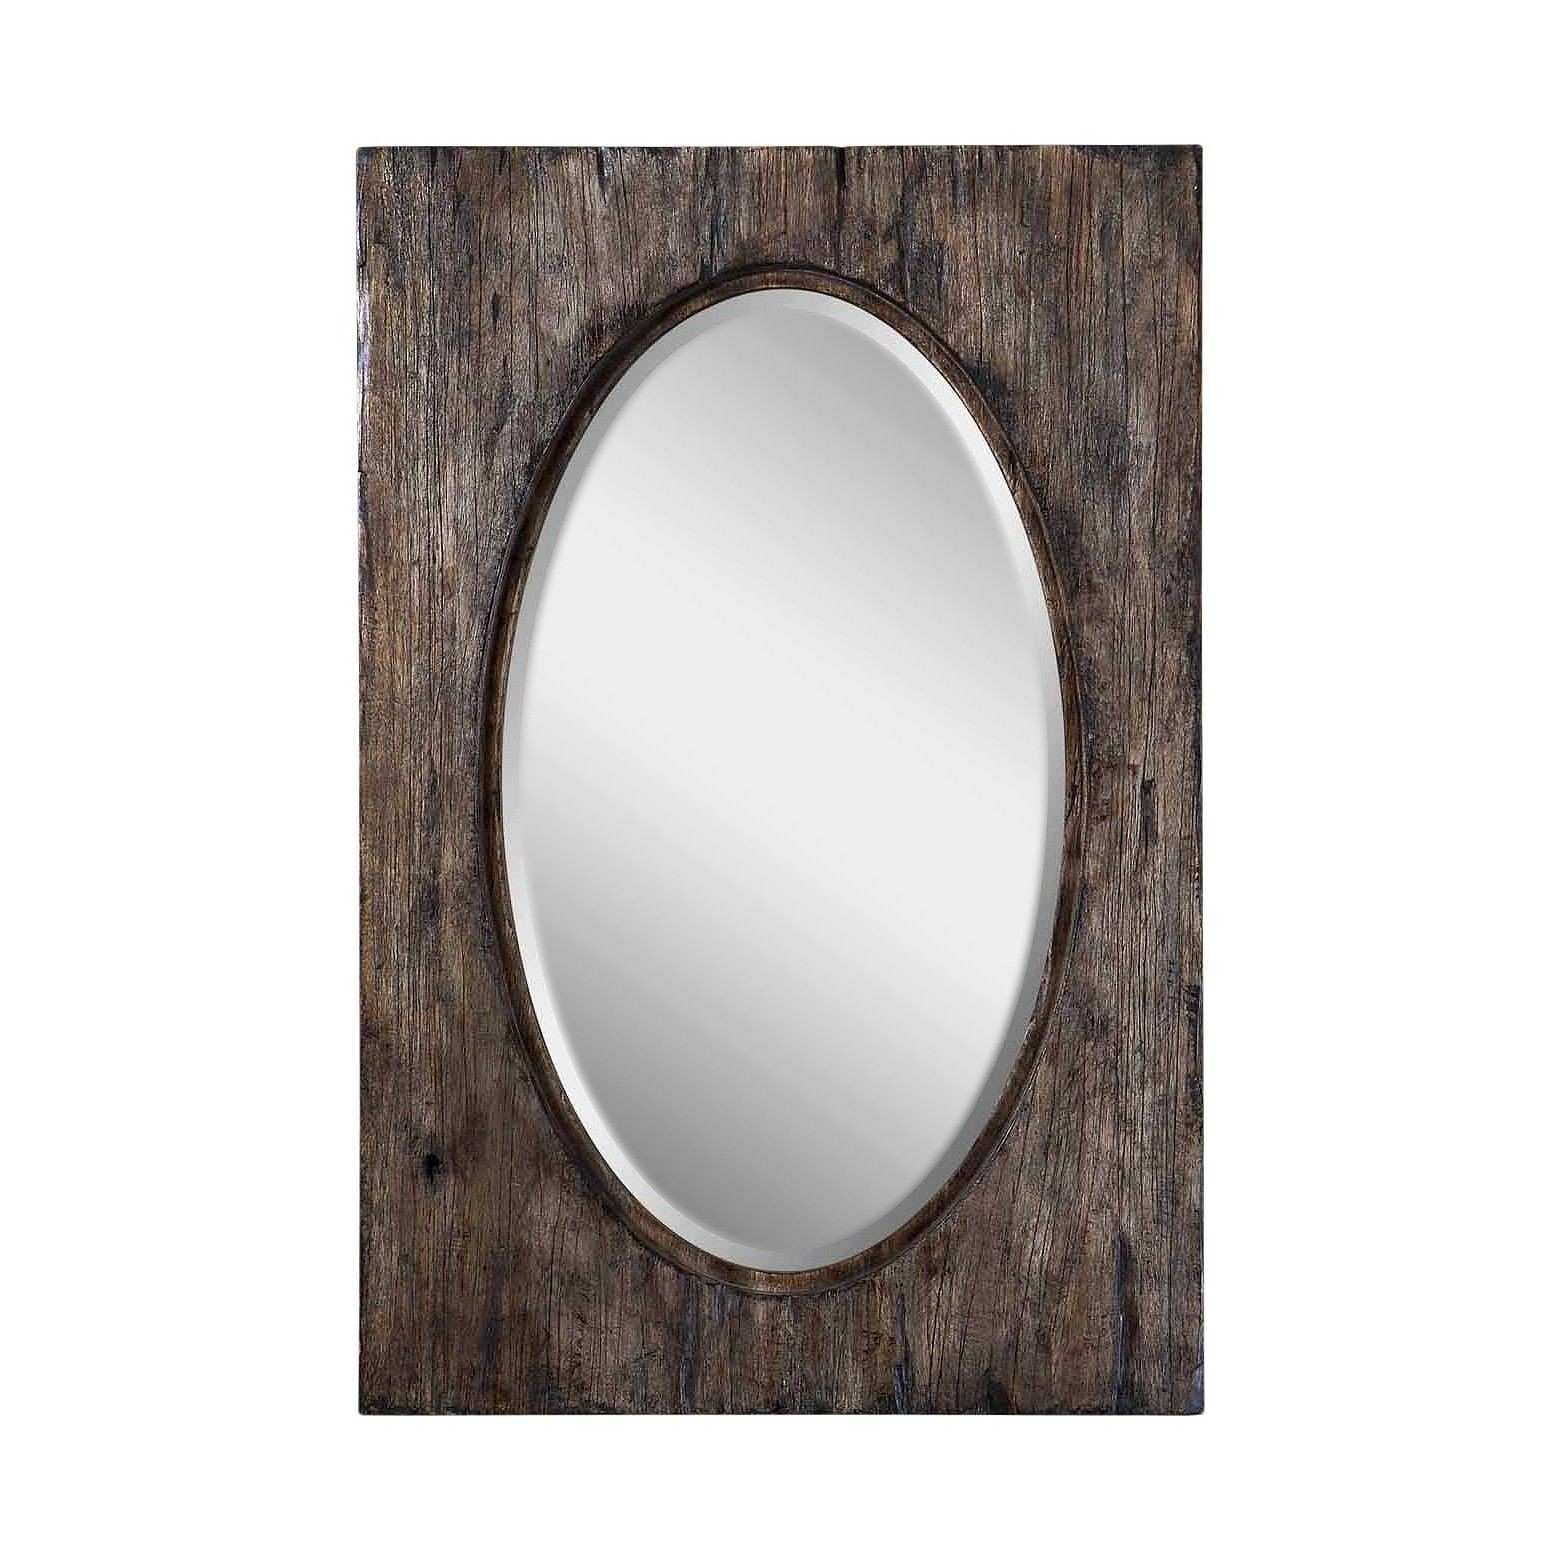 Oval Hitchcock Distressed Decorative Wall Mirror Wood Finish